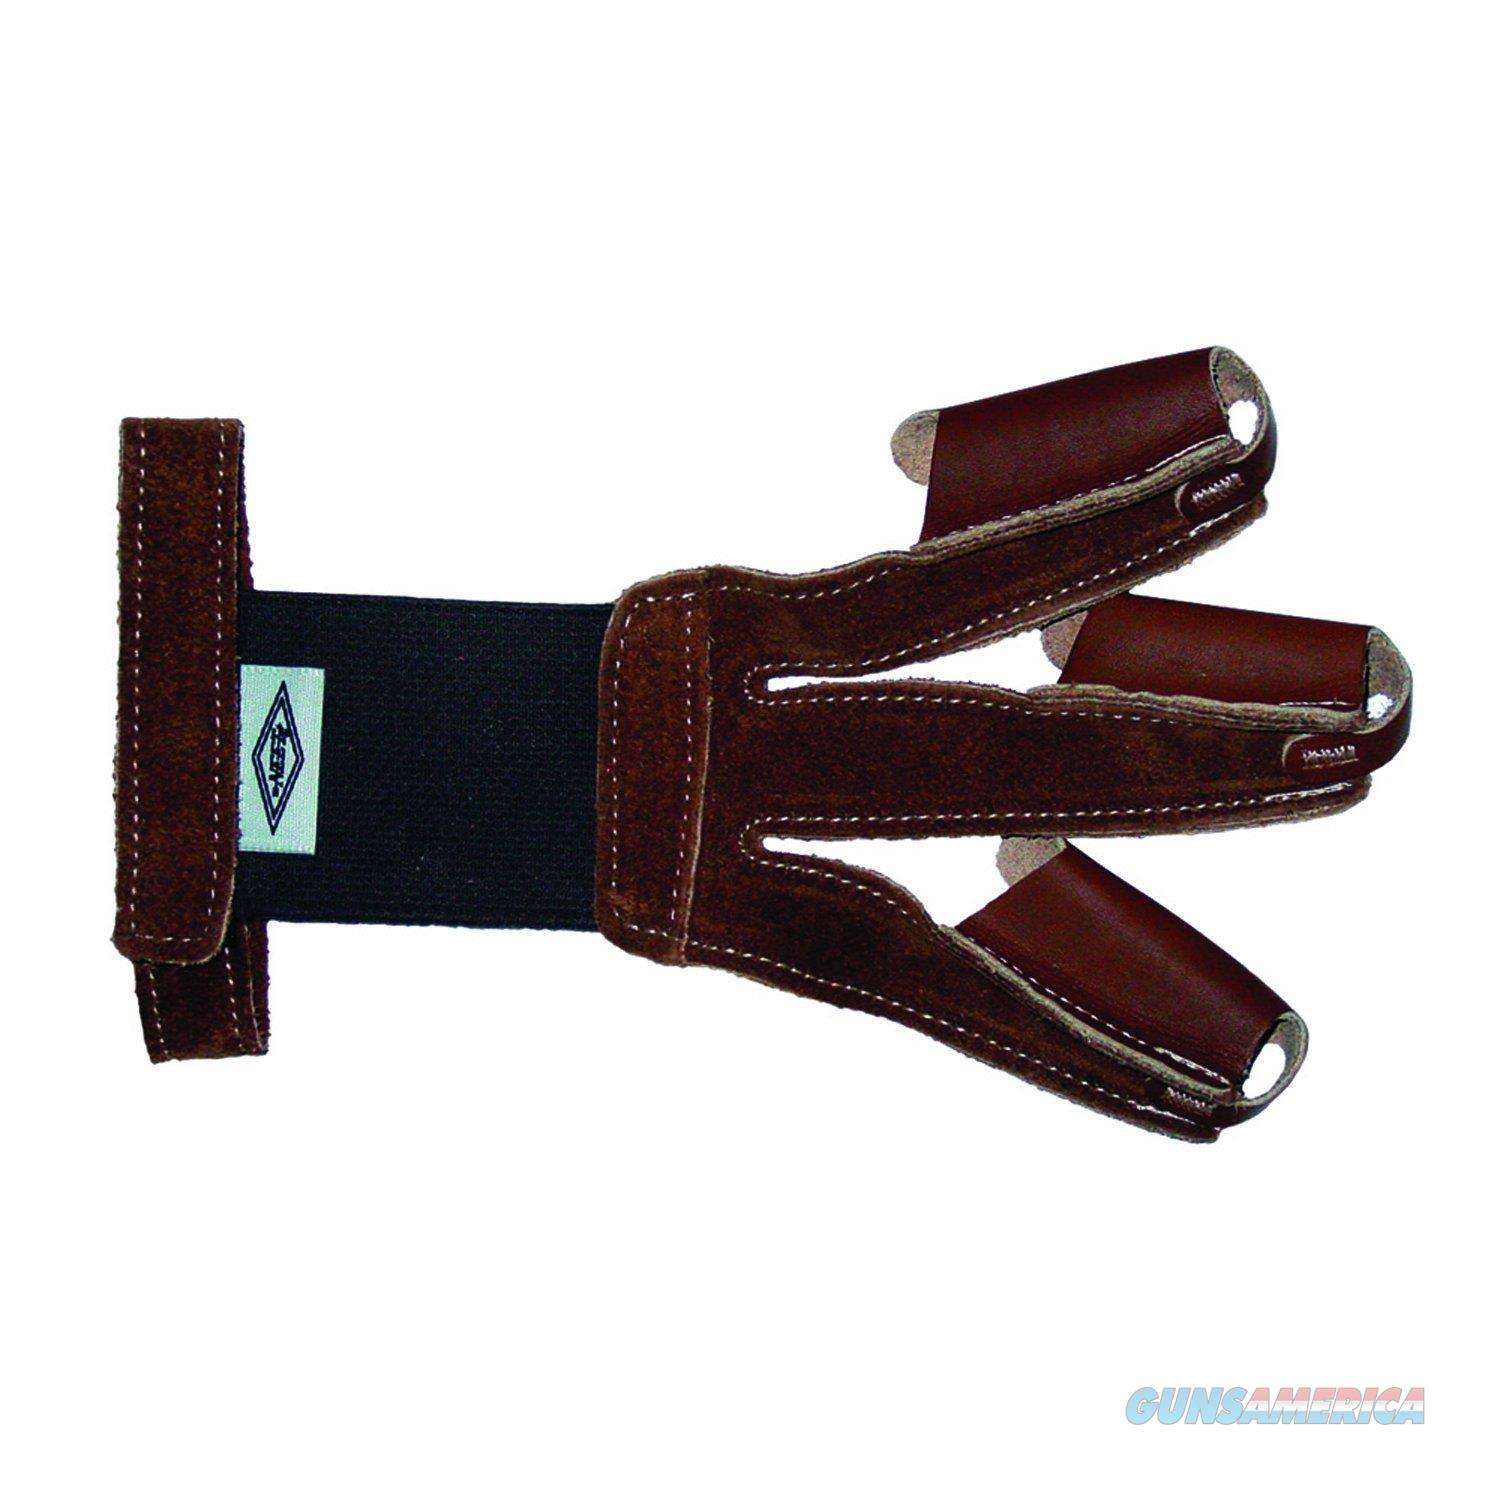 Neet Suede Leather Shooting Glove MD  Non-Guns > Hunting Clothing and Equipment > Clothing > Gloves